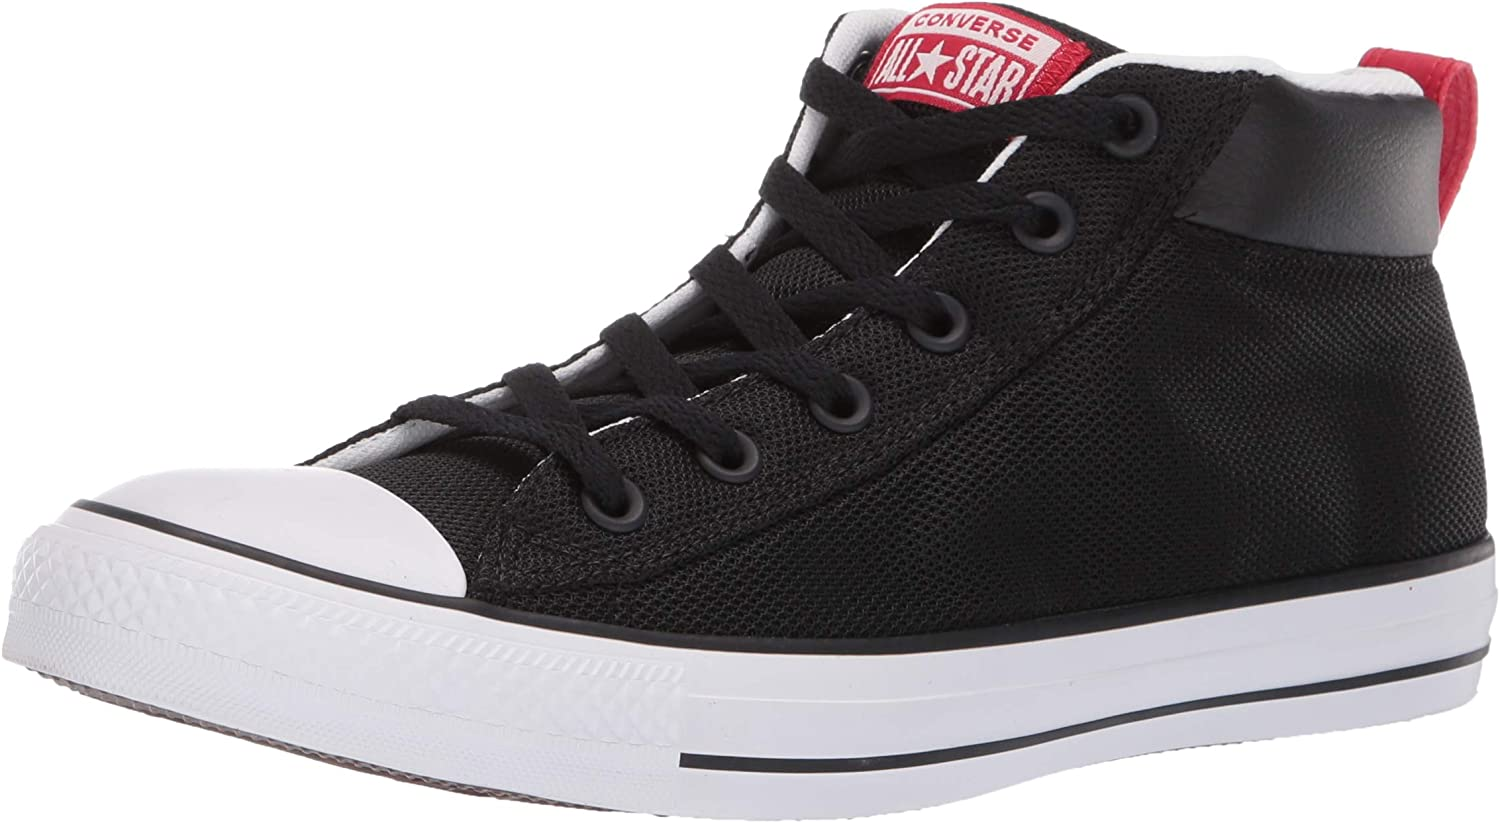 Converse Mens Unisex Chuck Taylor All Star Street Leather Mid Top Sneaker Sneaker